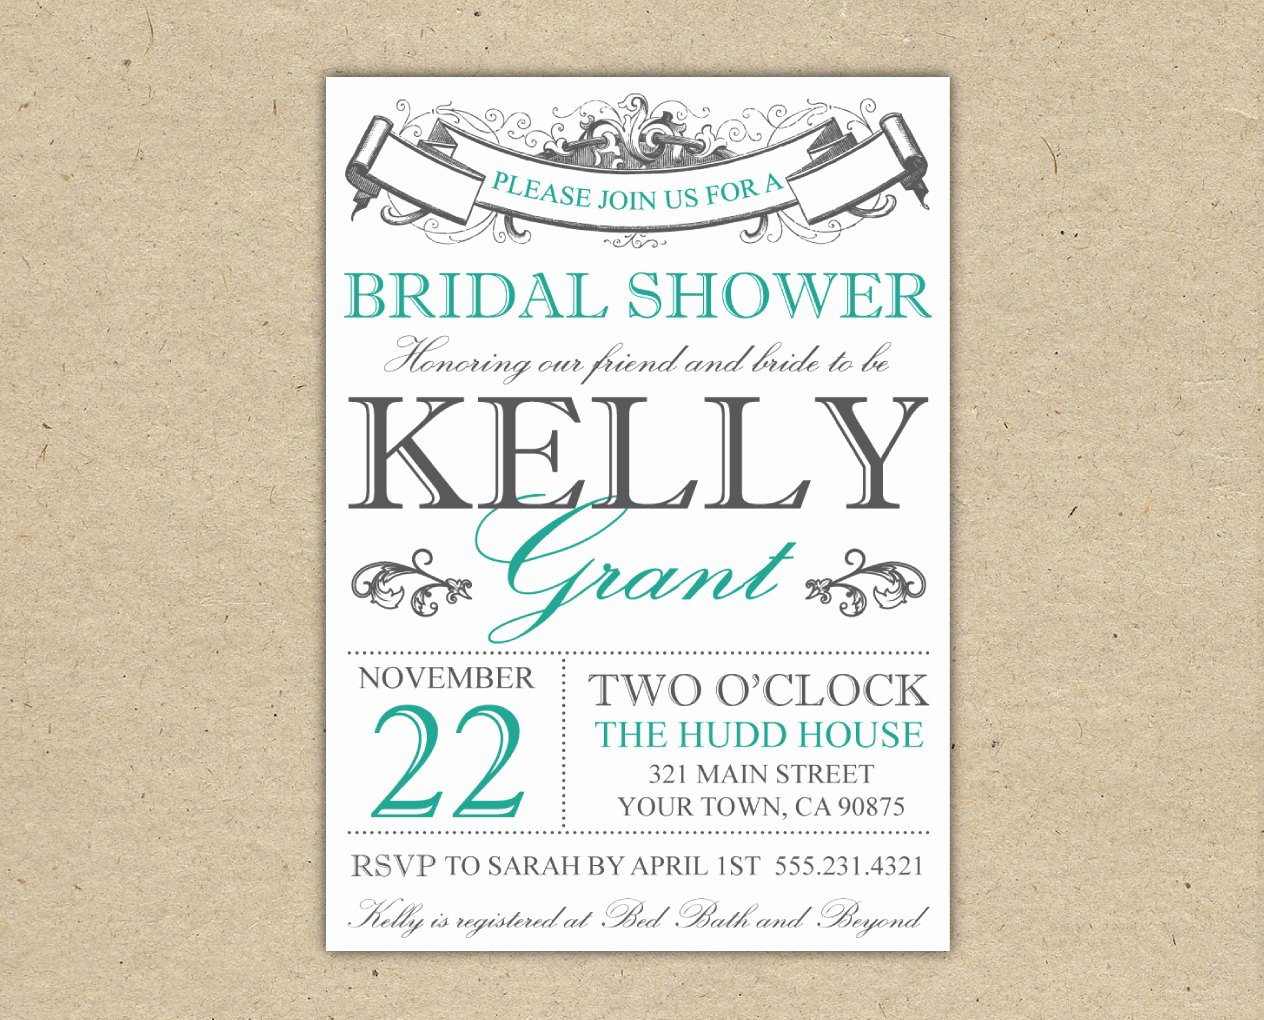 Bridal Shower Invitations Template Awesome Bridal Shower Invitations Bridal Shower Invitations Free